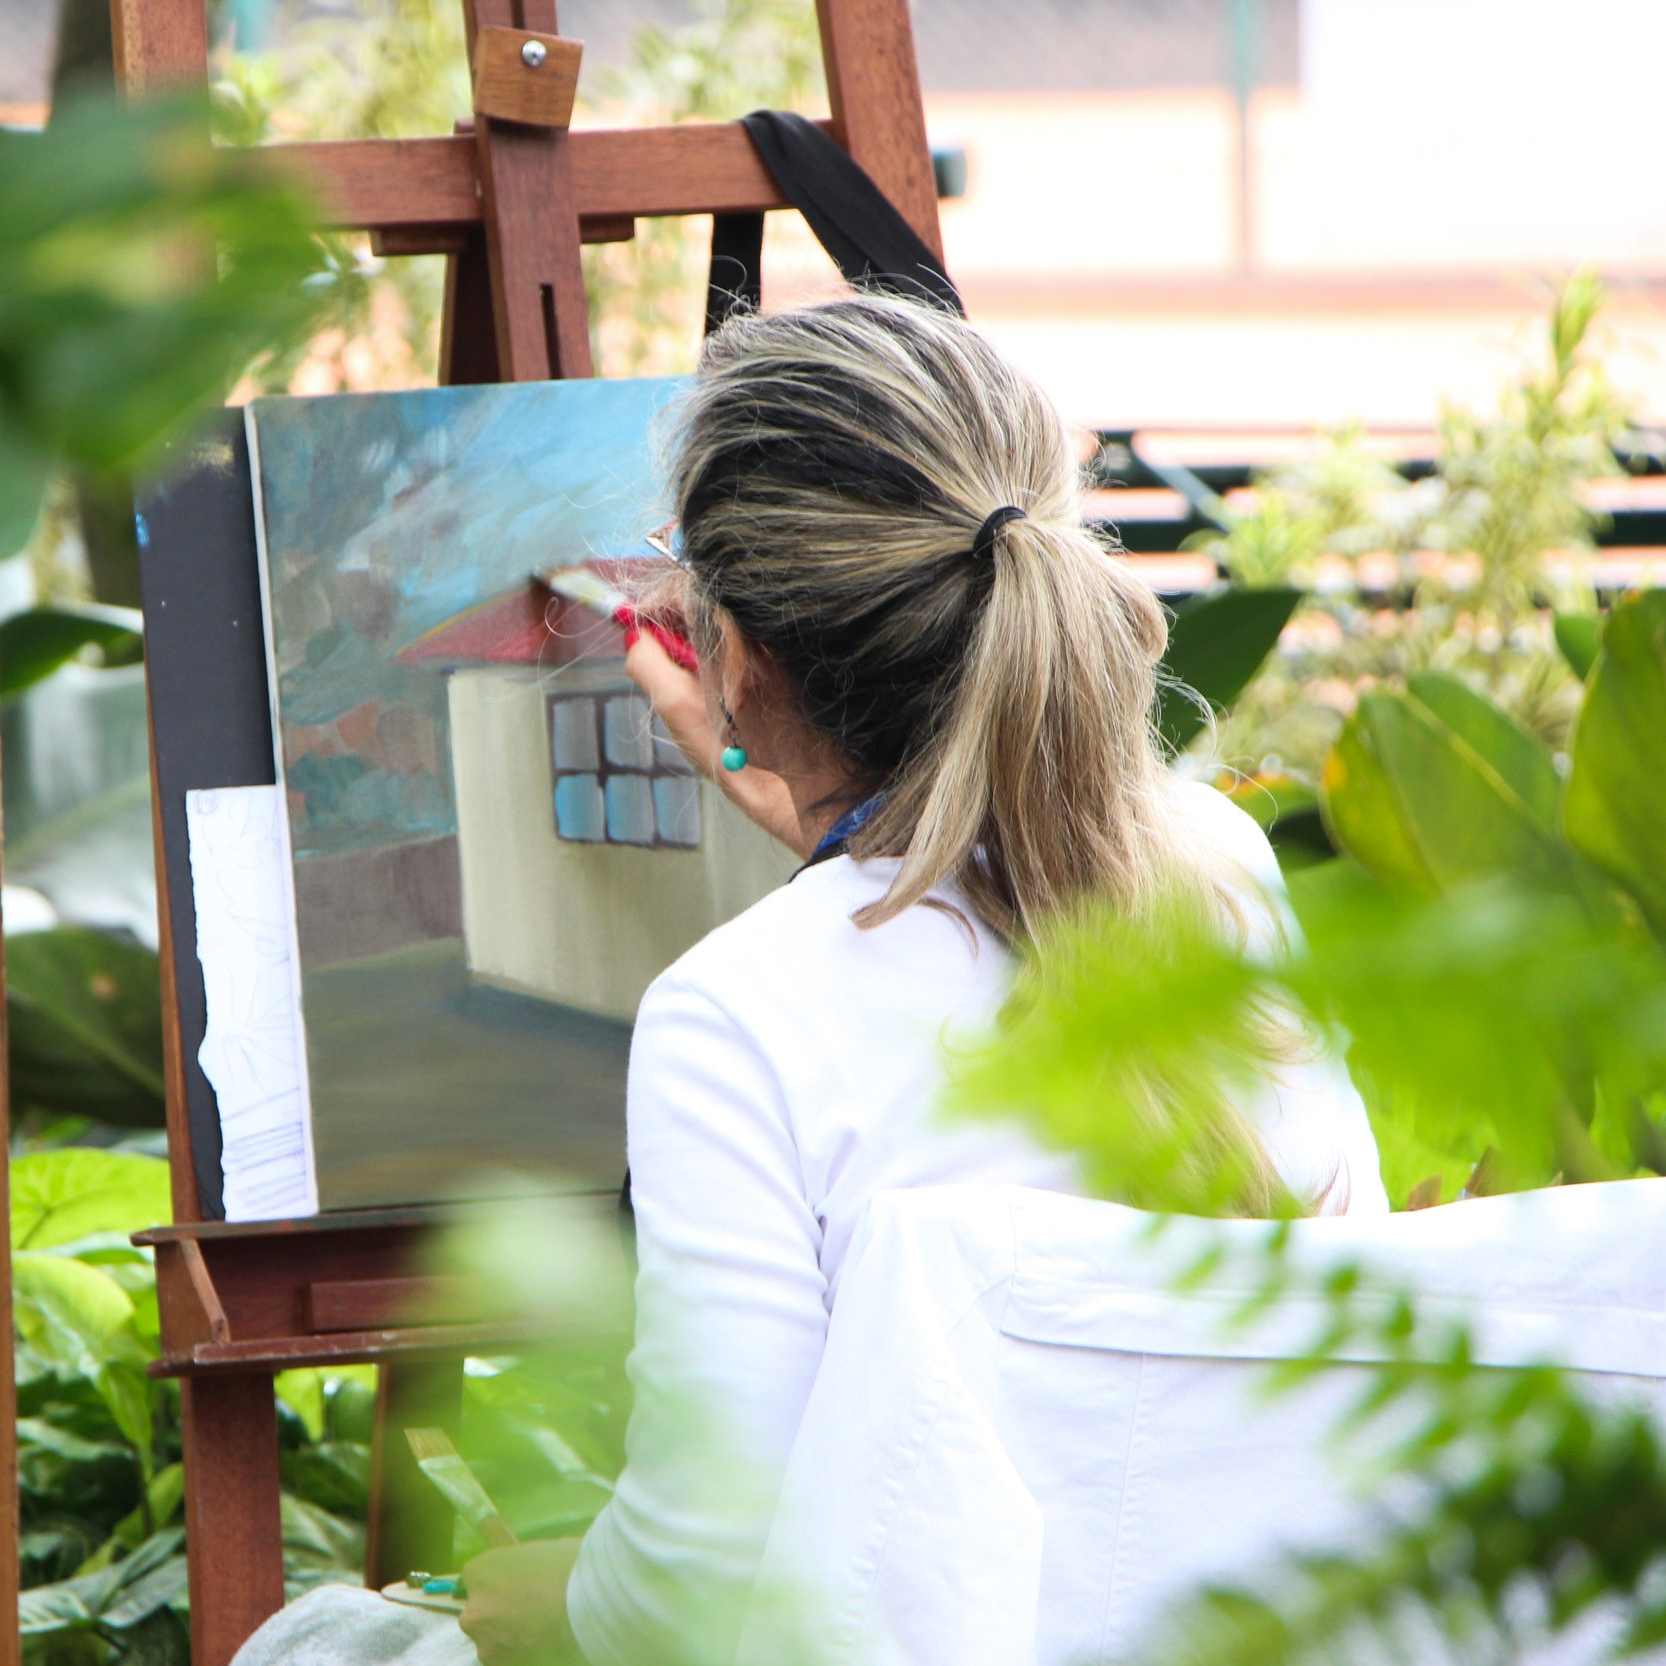 Jowler Creek Winery  features fun wine and painting parties for your bachelorette party, girls night out, corporate team outing or other group events. Our painting parties take place  in Weston Missouri, Kansas City Missouri and St. Joseph Missouri . This  event  is fun and engaging.